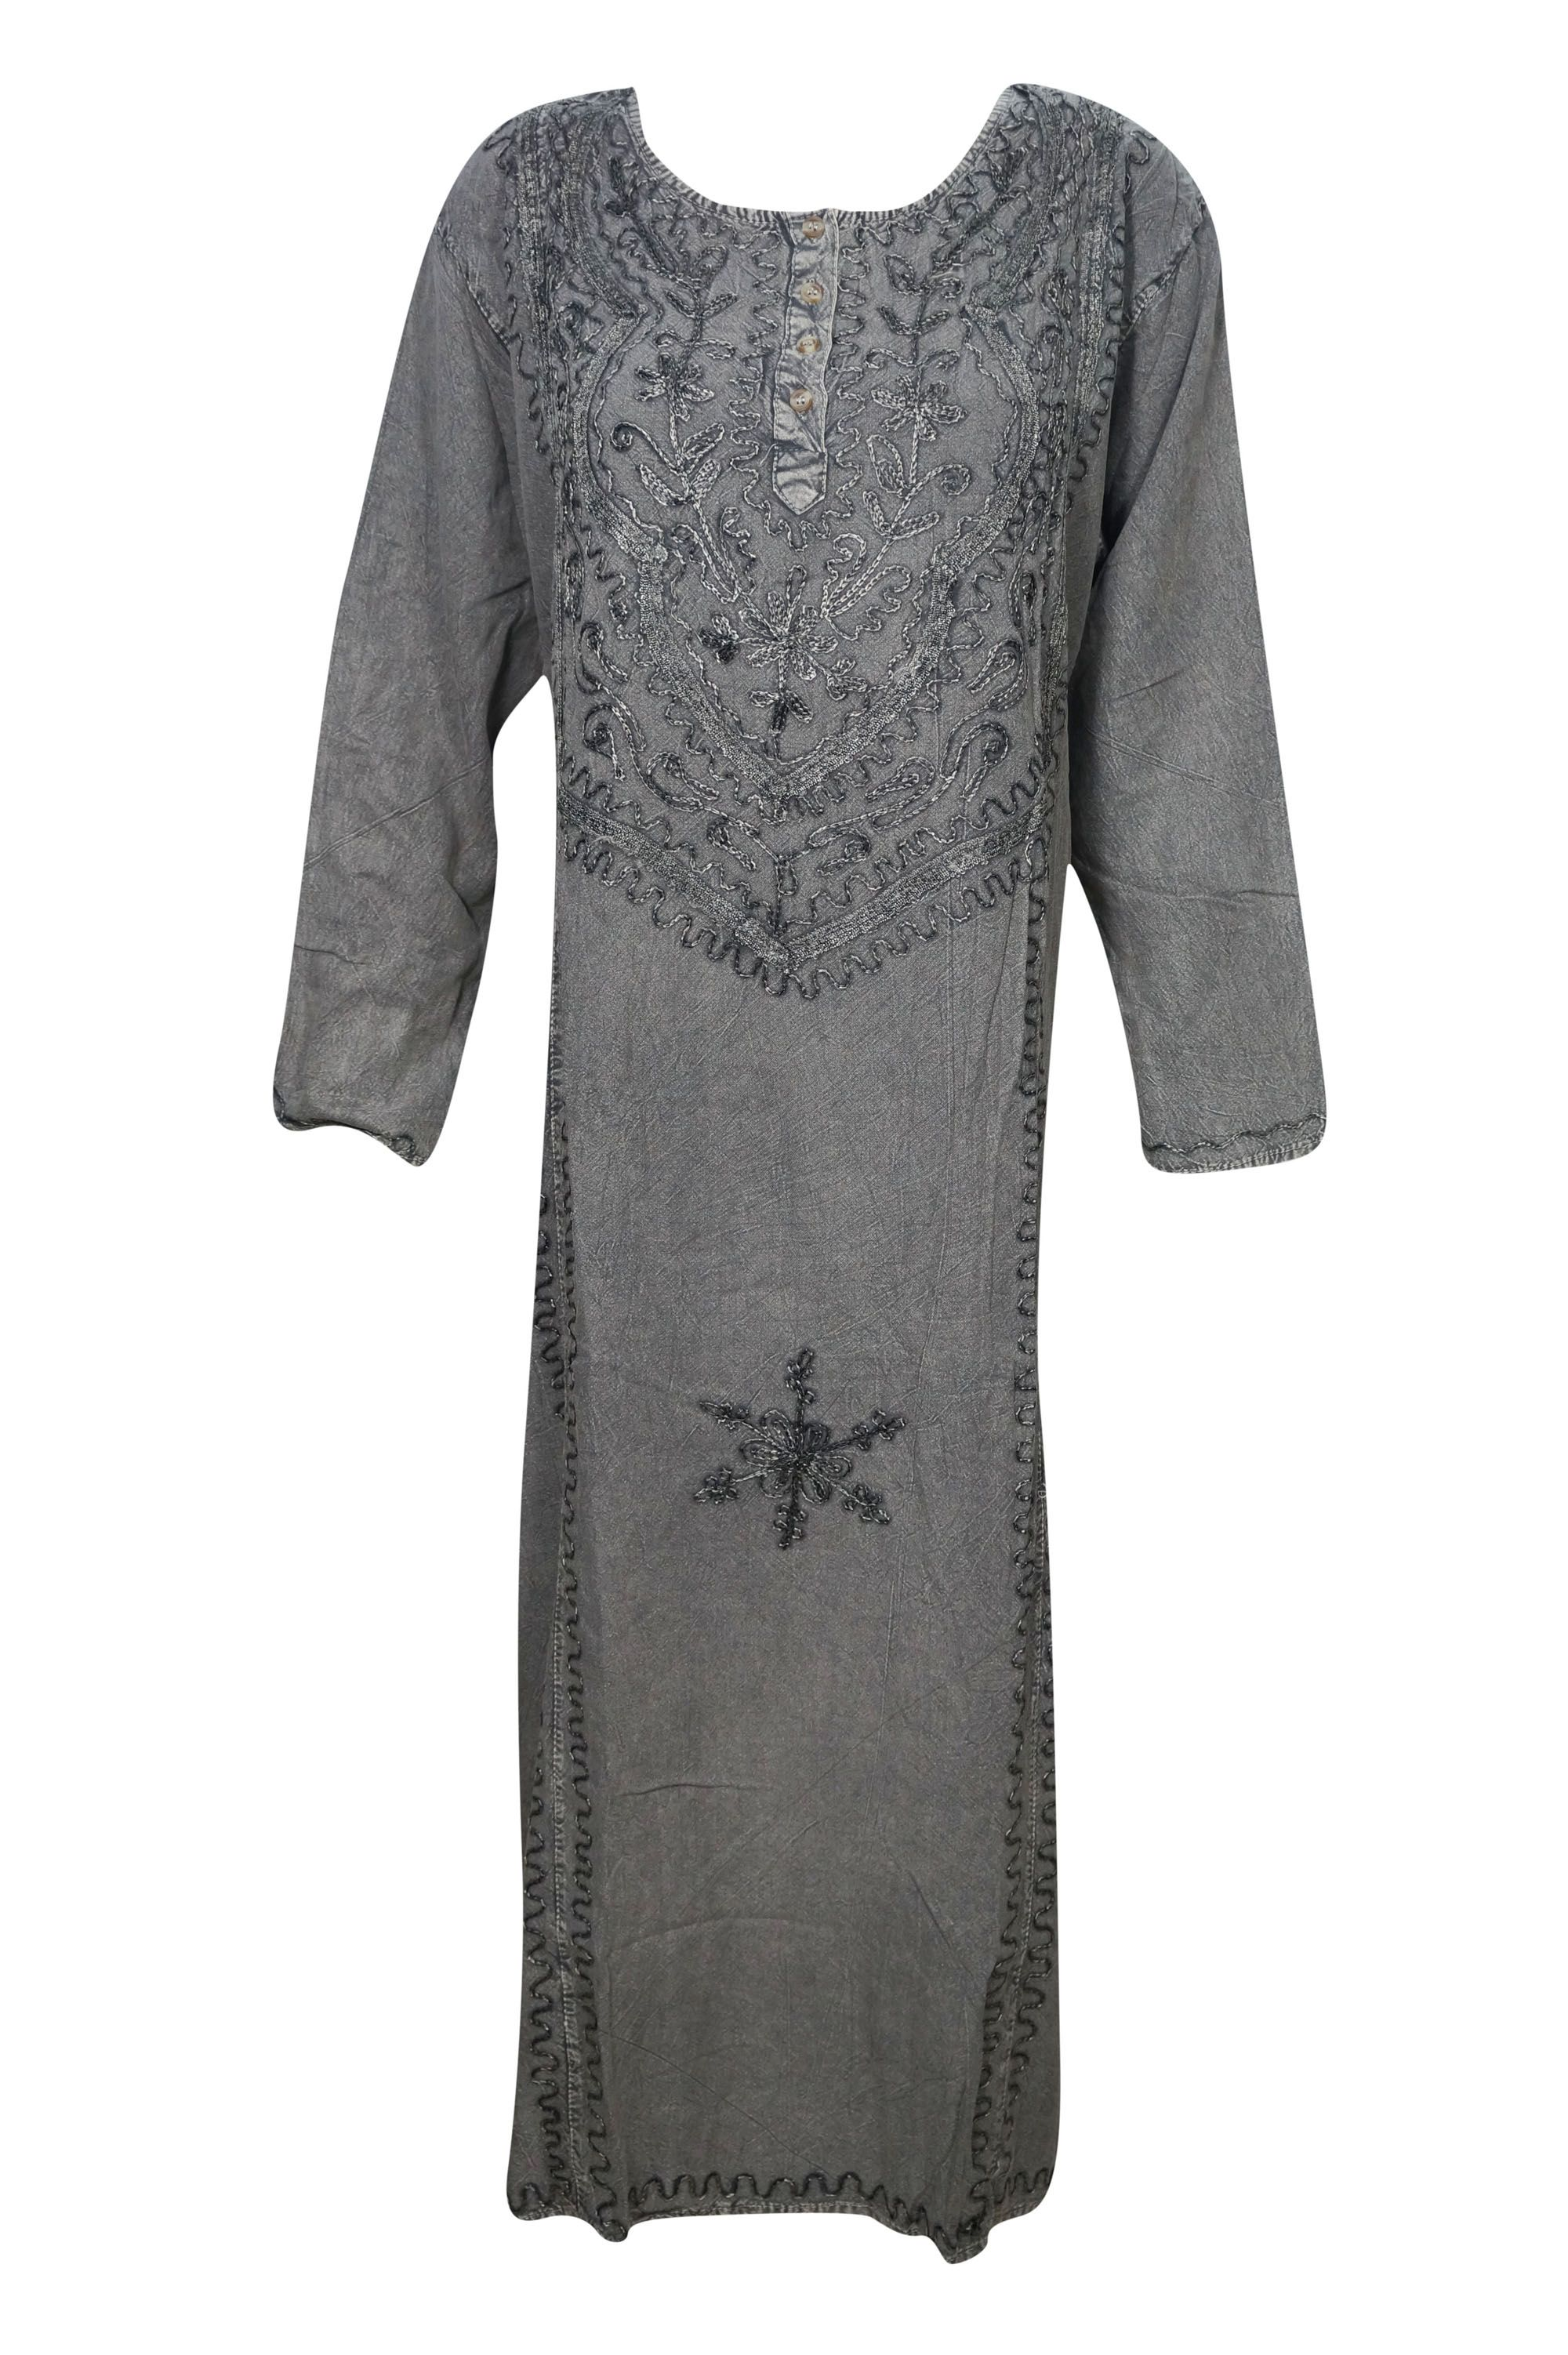 5b136da67d0 Buy Mogul Womens Long Dress Embroidered Long Sleeves Enzyme Wash Rayon  Comfy Evening Ethnic Maxi Shift Dresses at Walmart.com